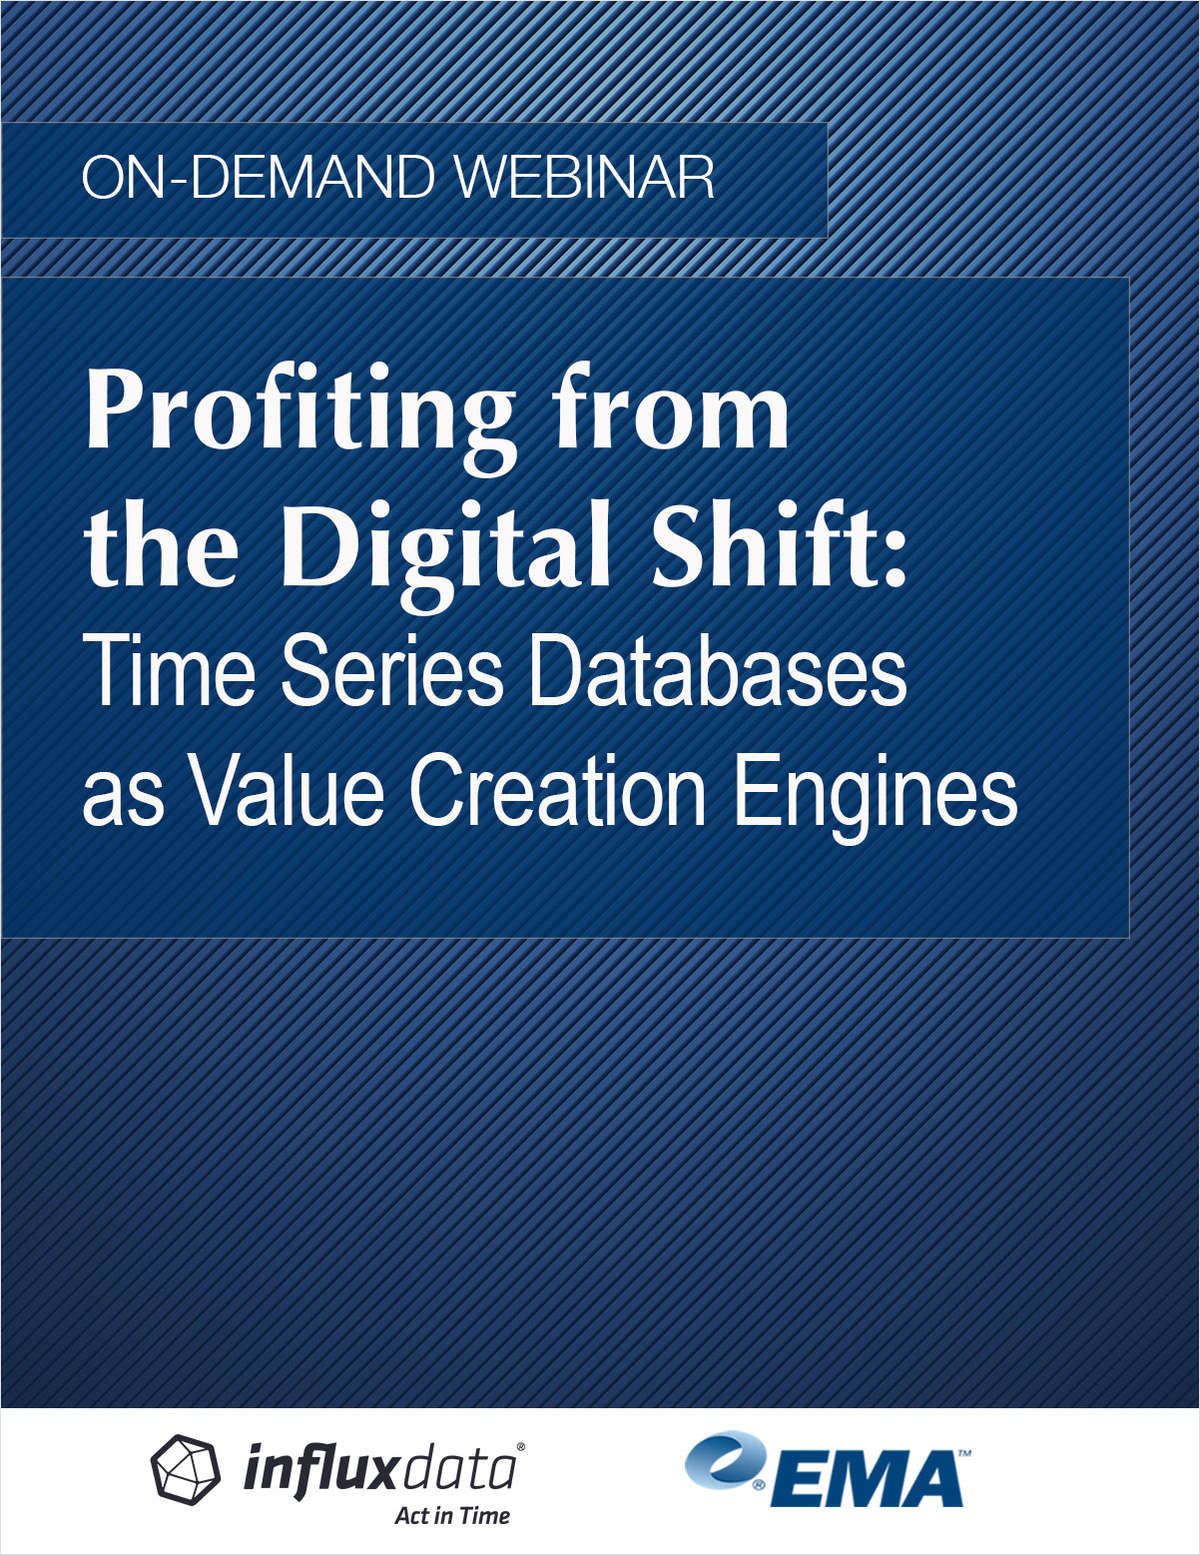 On-Demand Webinar: Profiting from the Digital Shift